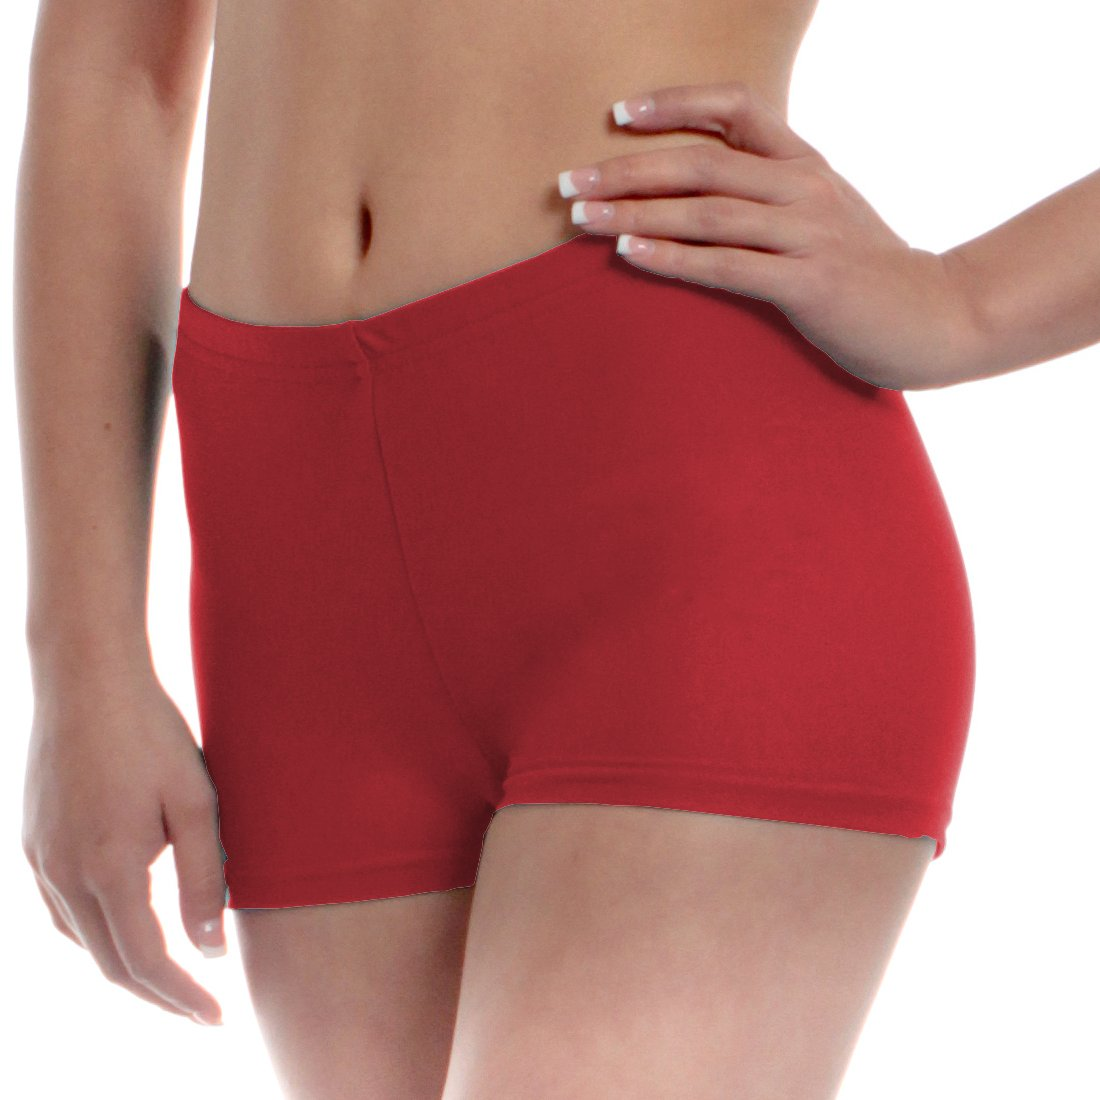 Mens Long Dance Shorts Extra Small Red by B Dancewear Adult Sizes by Bailar Dancewear